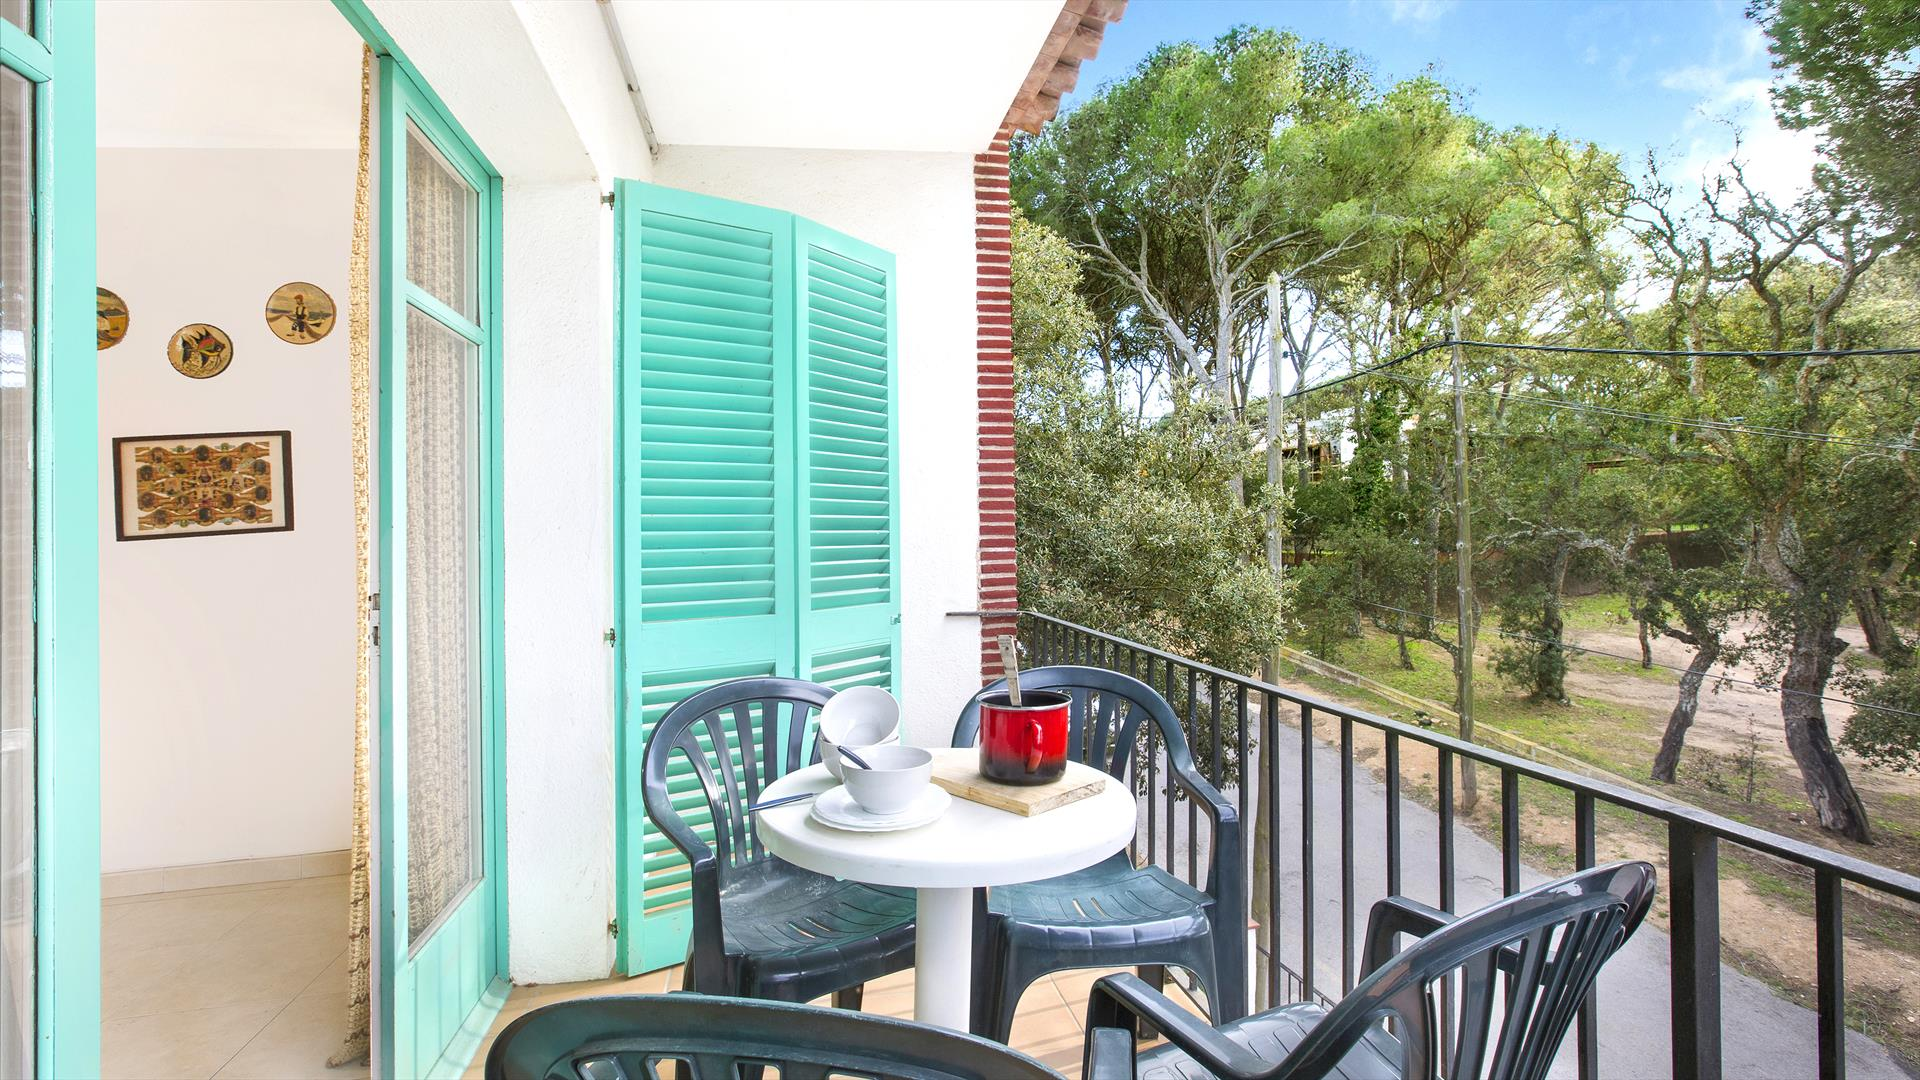 Rosa 3, Apartment in Llafranc, on the Costa Brava, Spain for 6 persons...